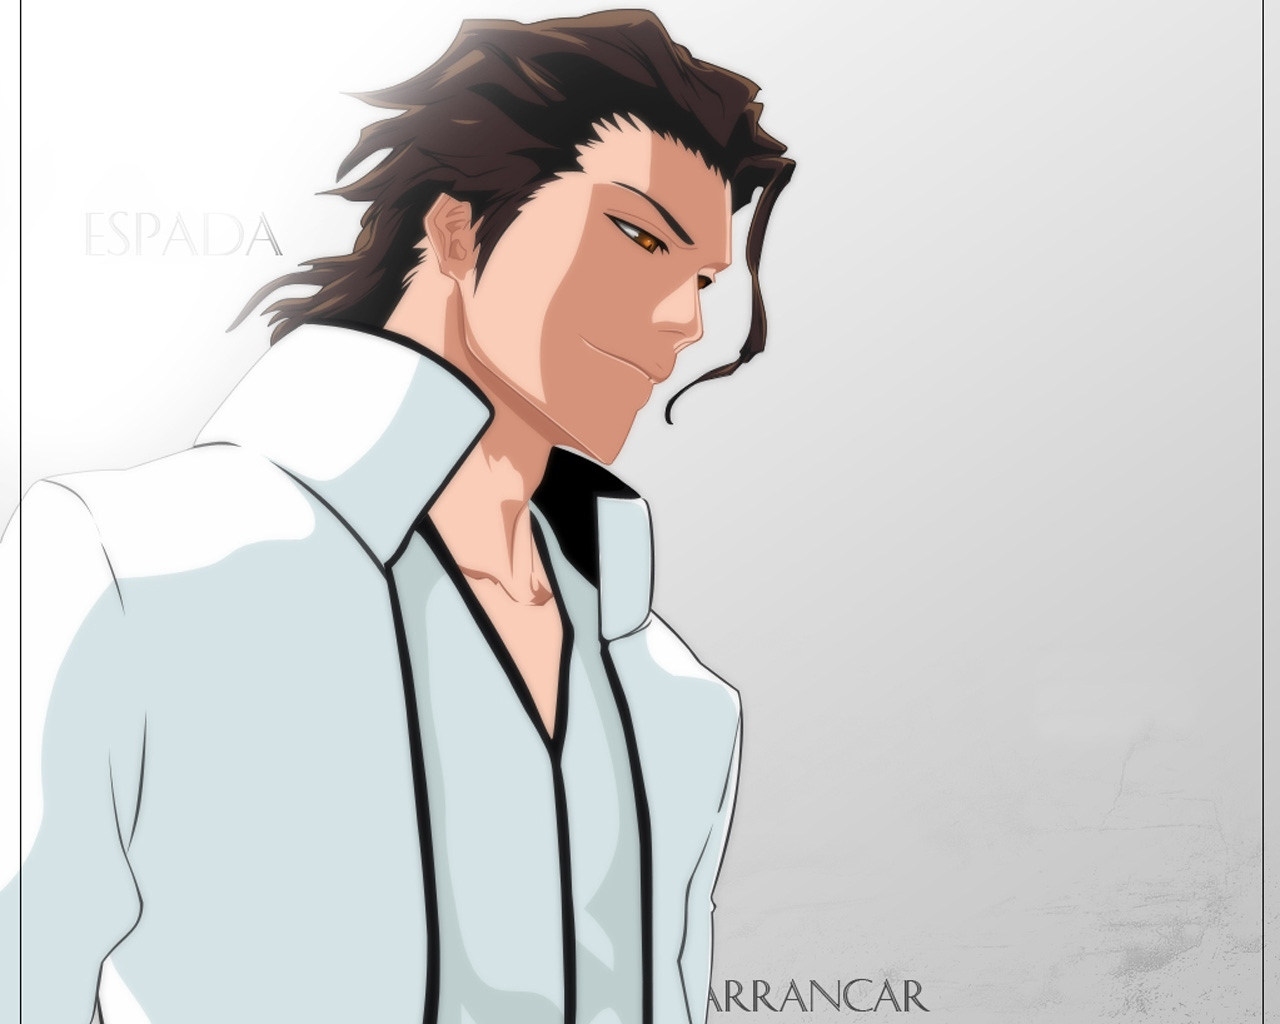 Download wallpaper 1280x1024 bleach aizen sousuke man brunette 1280x1024